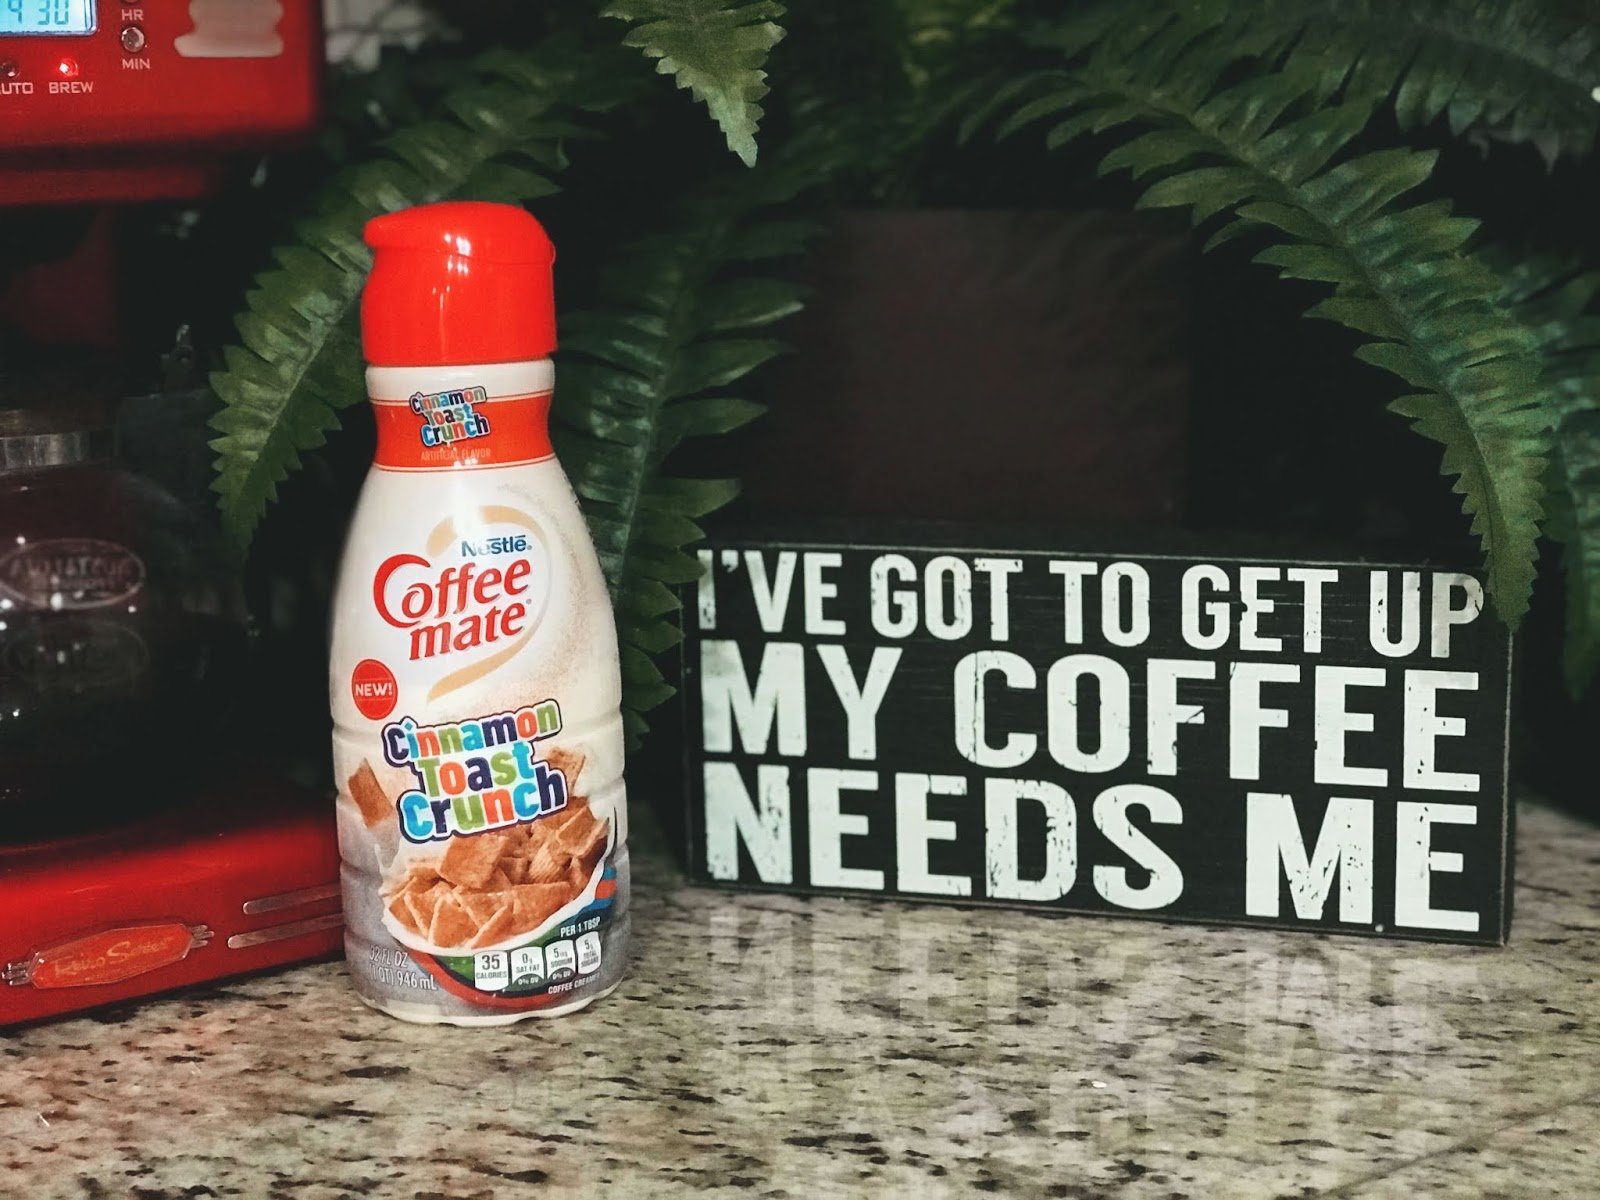 Happy Diaries: NEW Cinnamon Toast Crunch Creamer And Trying To Stay Optimistic!